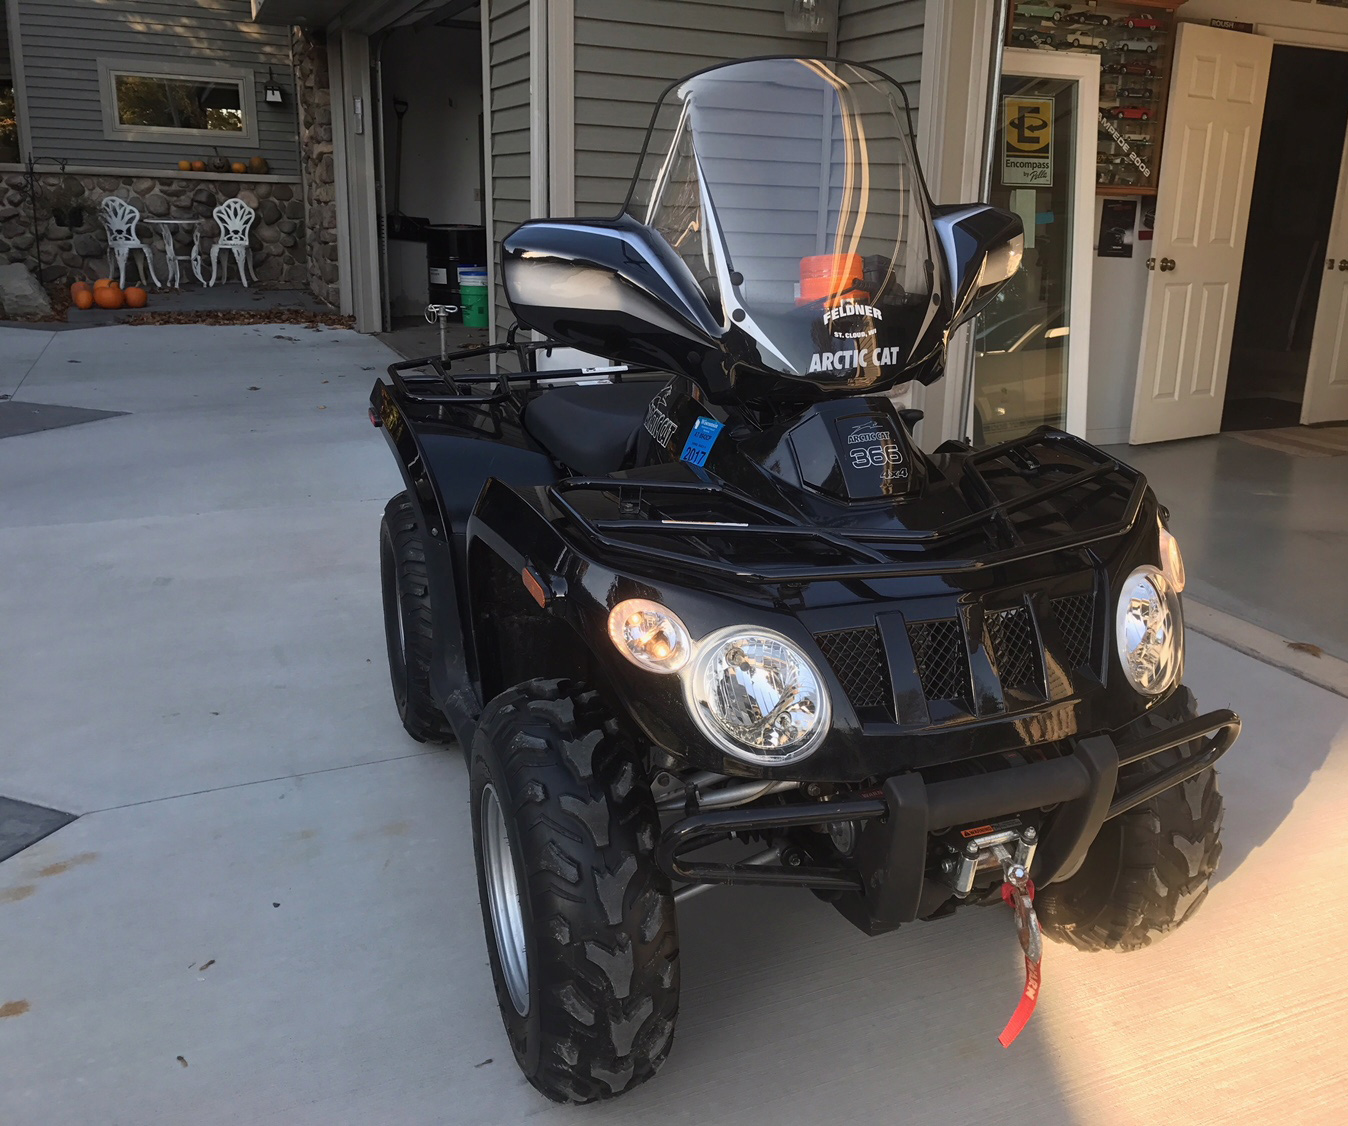 This ATV was stolen from a garage and shed in Harrison the weekend of Dec. 9-10, 2017. (Photo courtesy Calumet Co. Sheriff's Dept.)